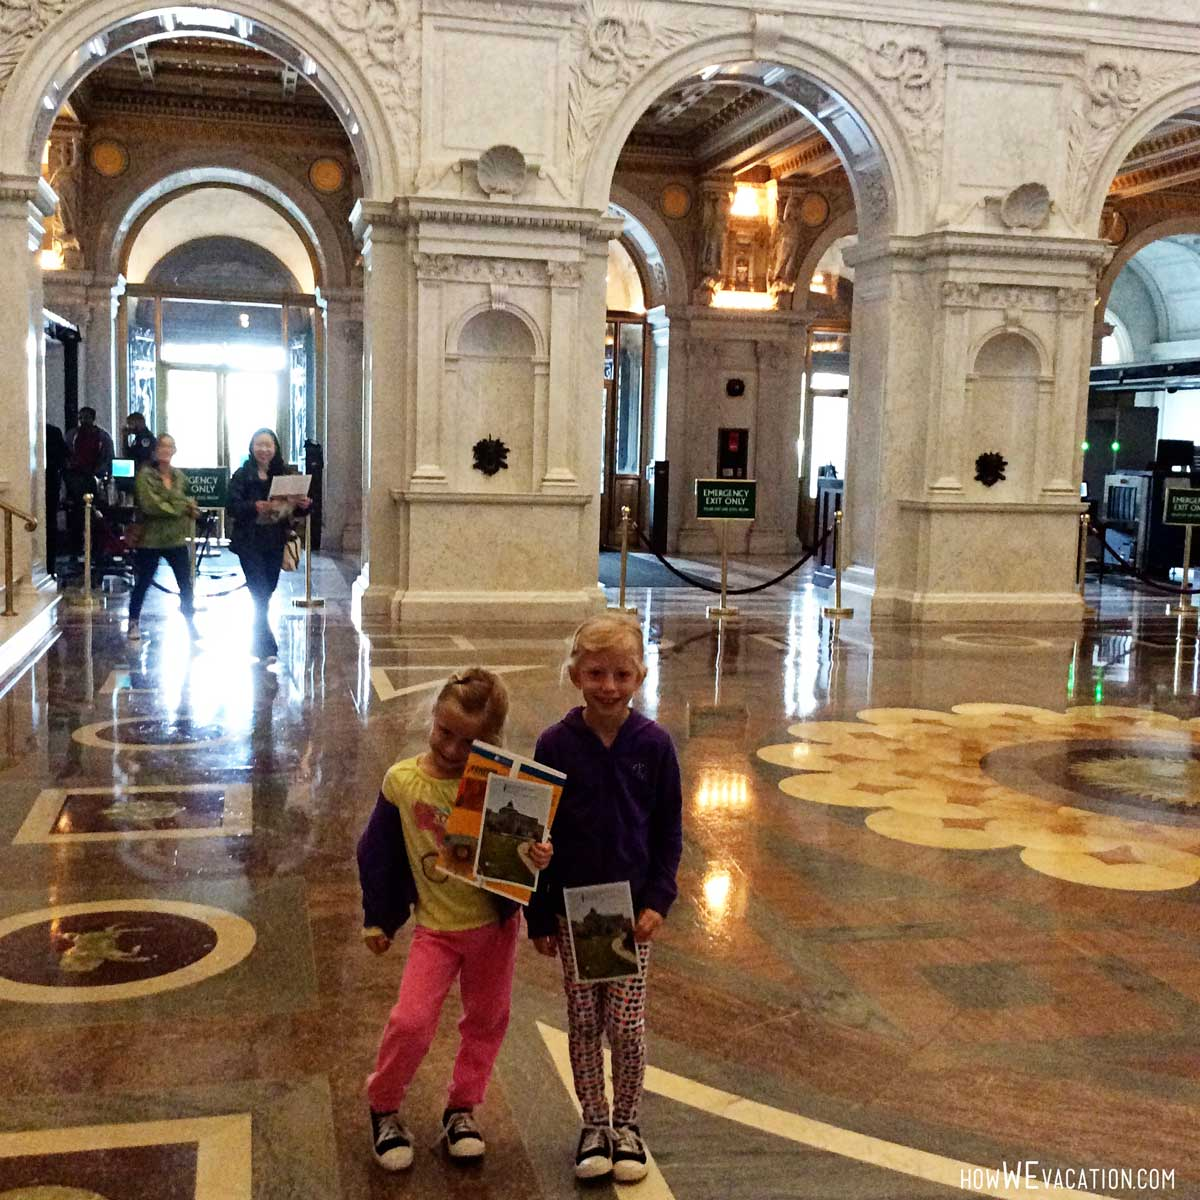 Kids at the Library of Congress